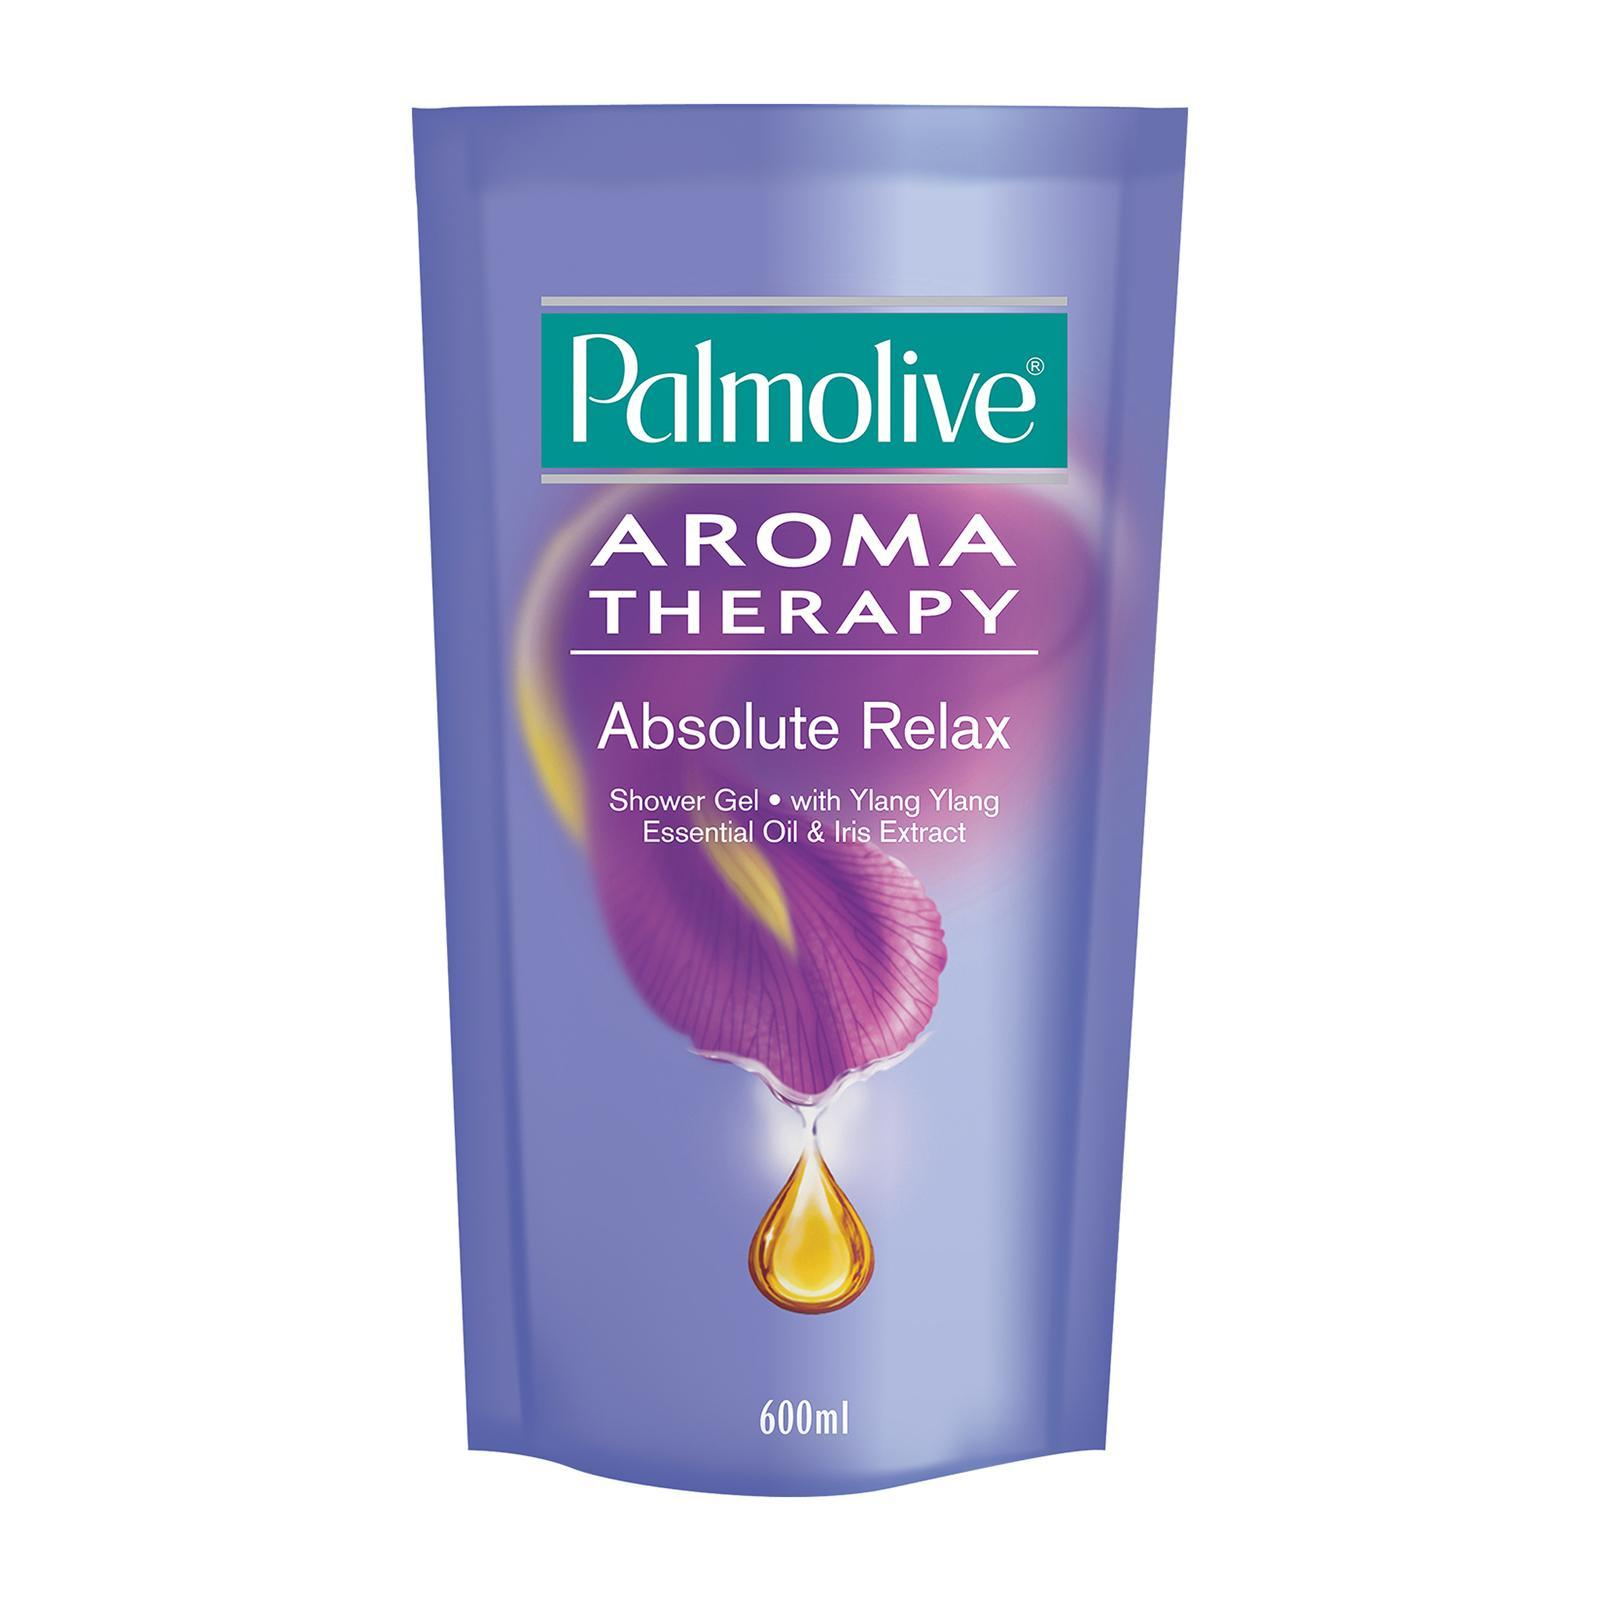 Palmolive Aroma Therapy Absolute Relax Shower Gel Refill